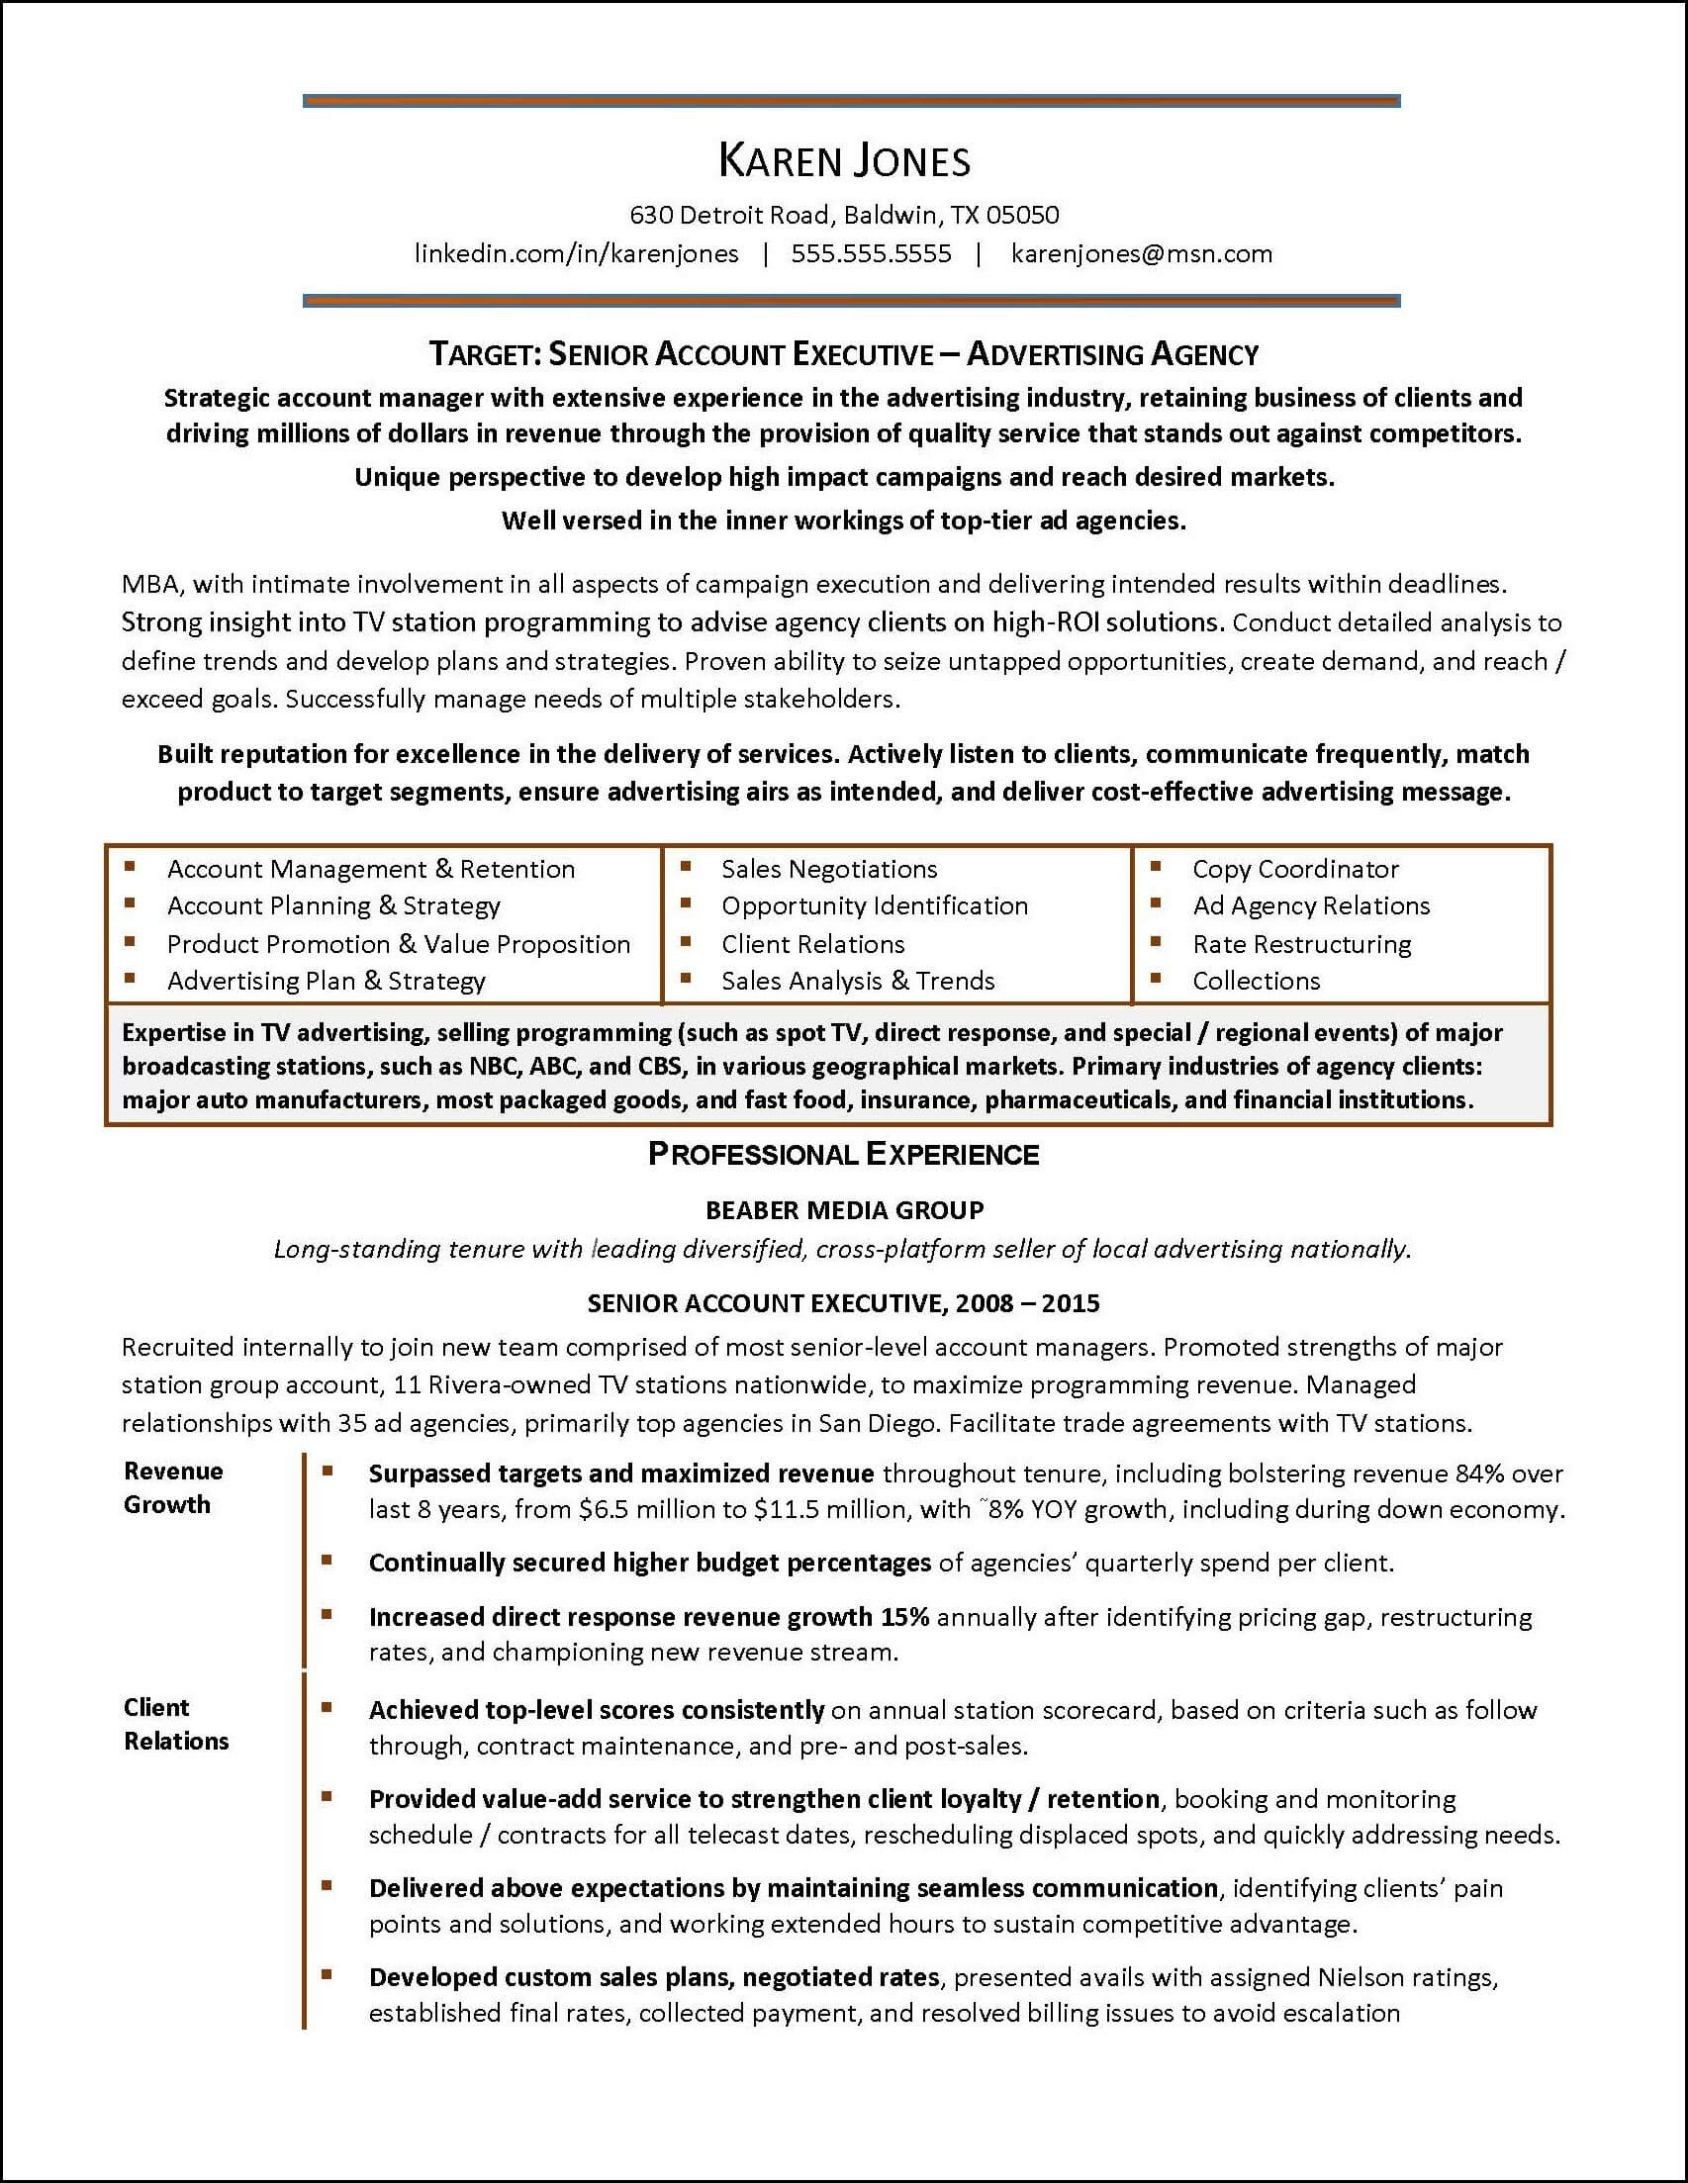 Advertising Account Executive Resume New 101  Pinterest  Resume Examples And Template